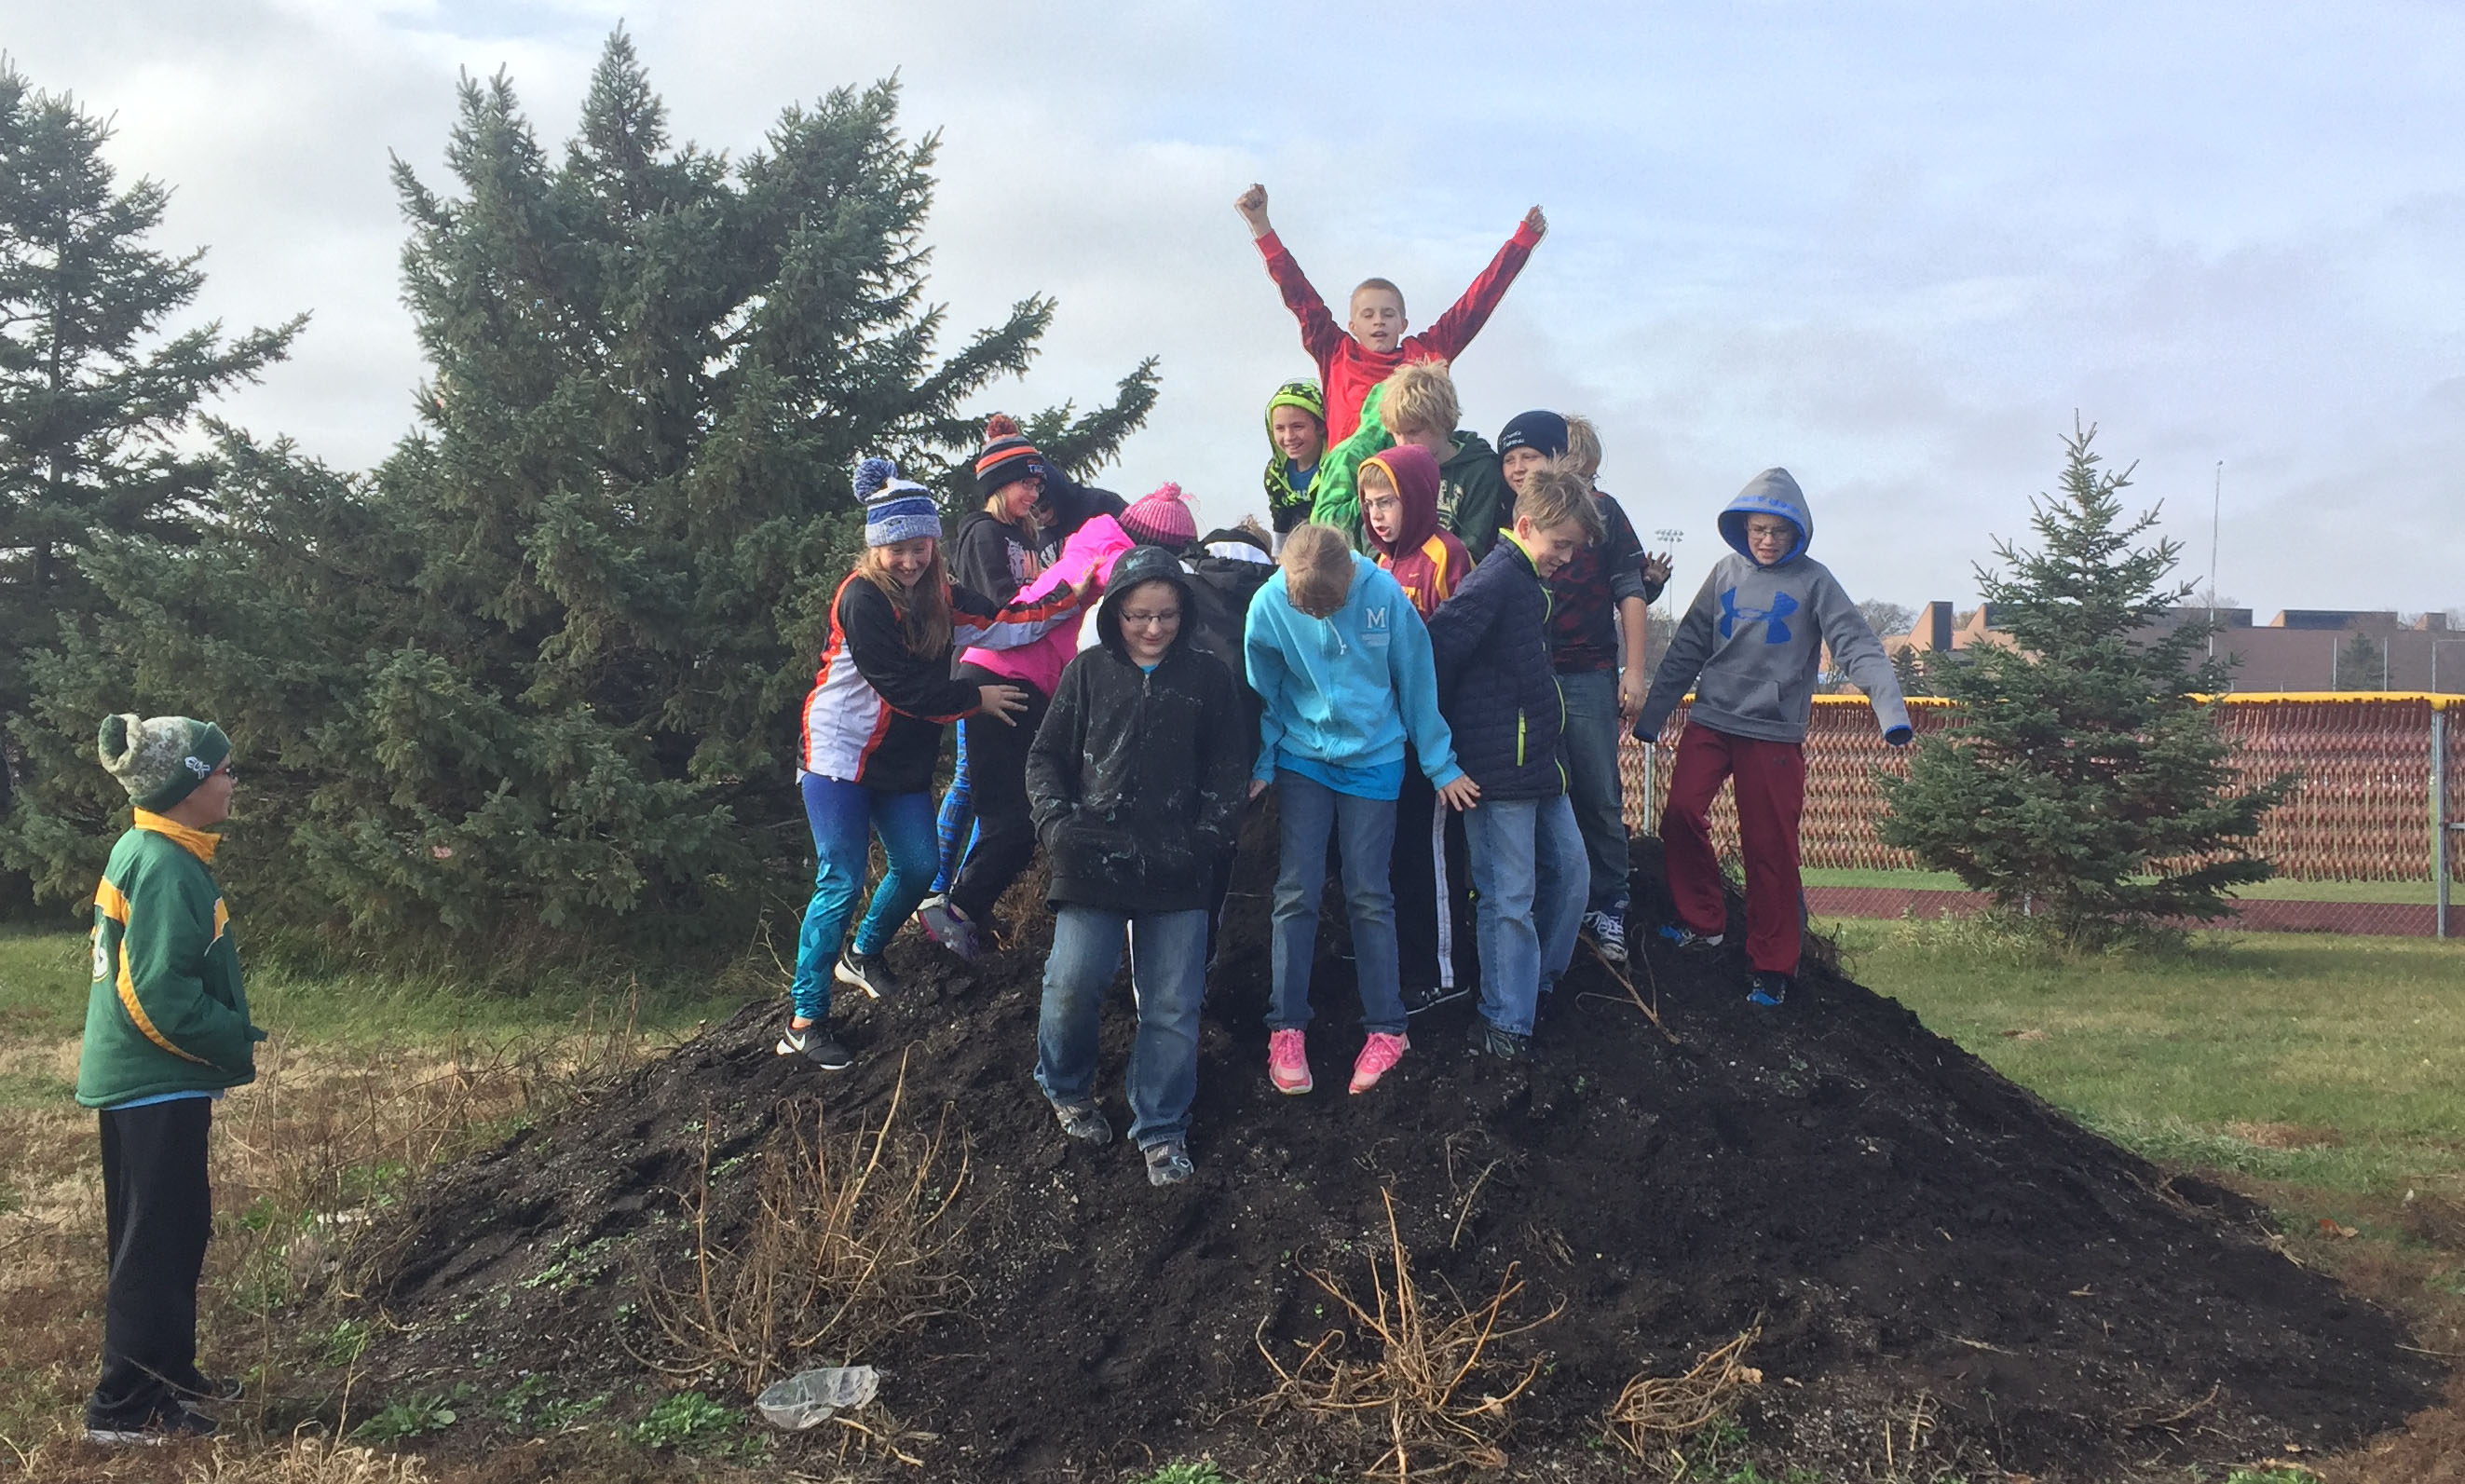 UMN Morris teamed up with the Morris Areas School District to start collecting organics in 2017, collecting nearly 100,000 lbs in the first two years.